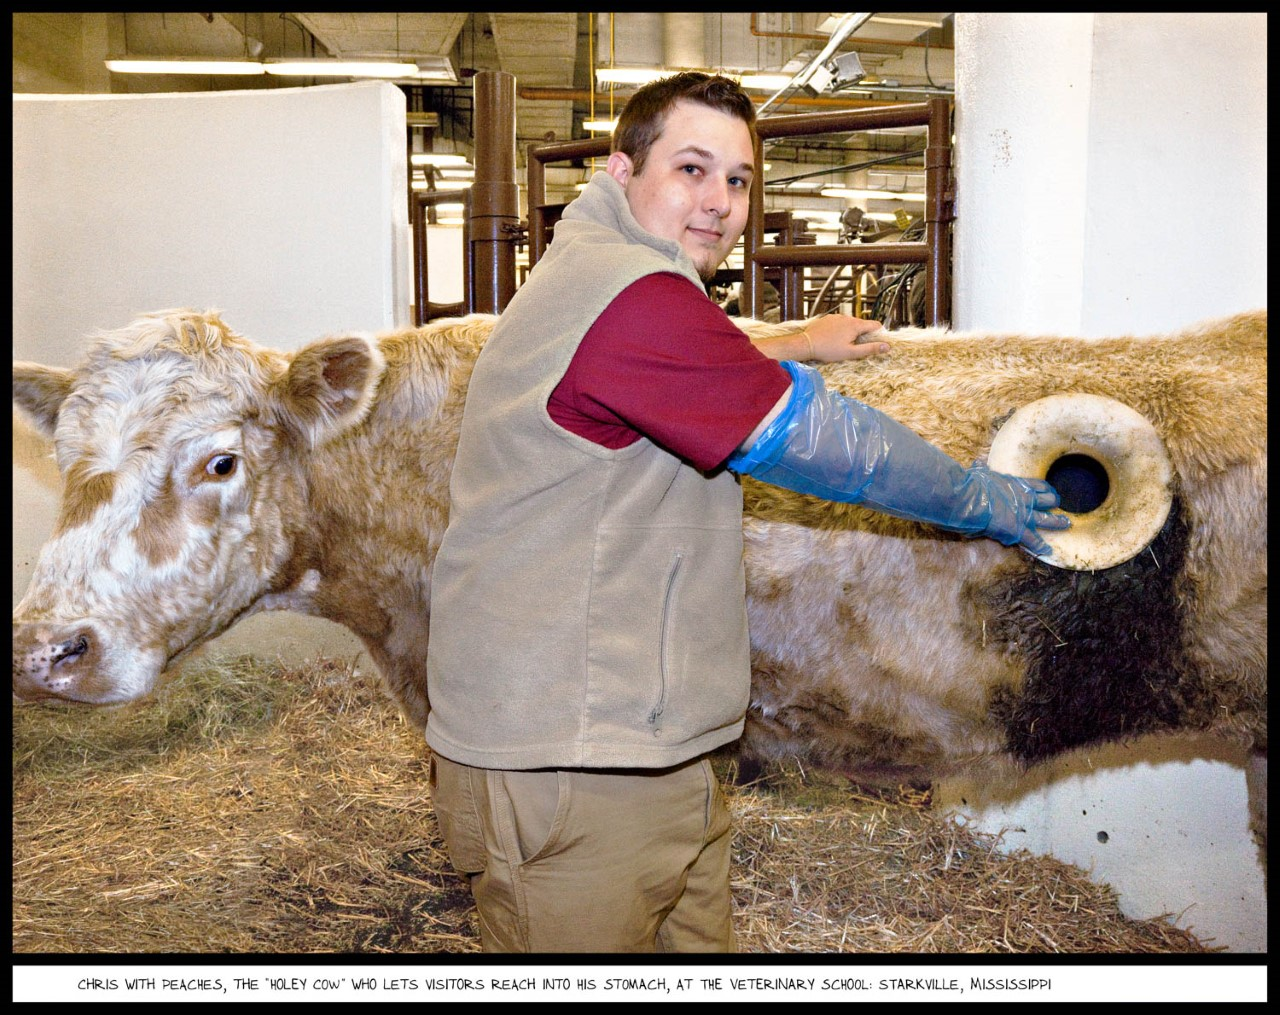 photo of chris with cow named peaches